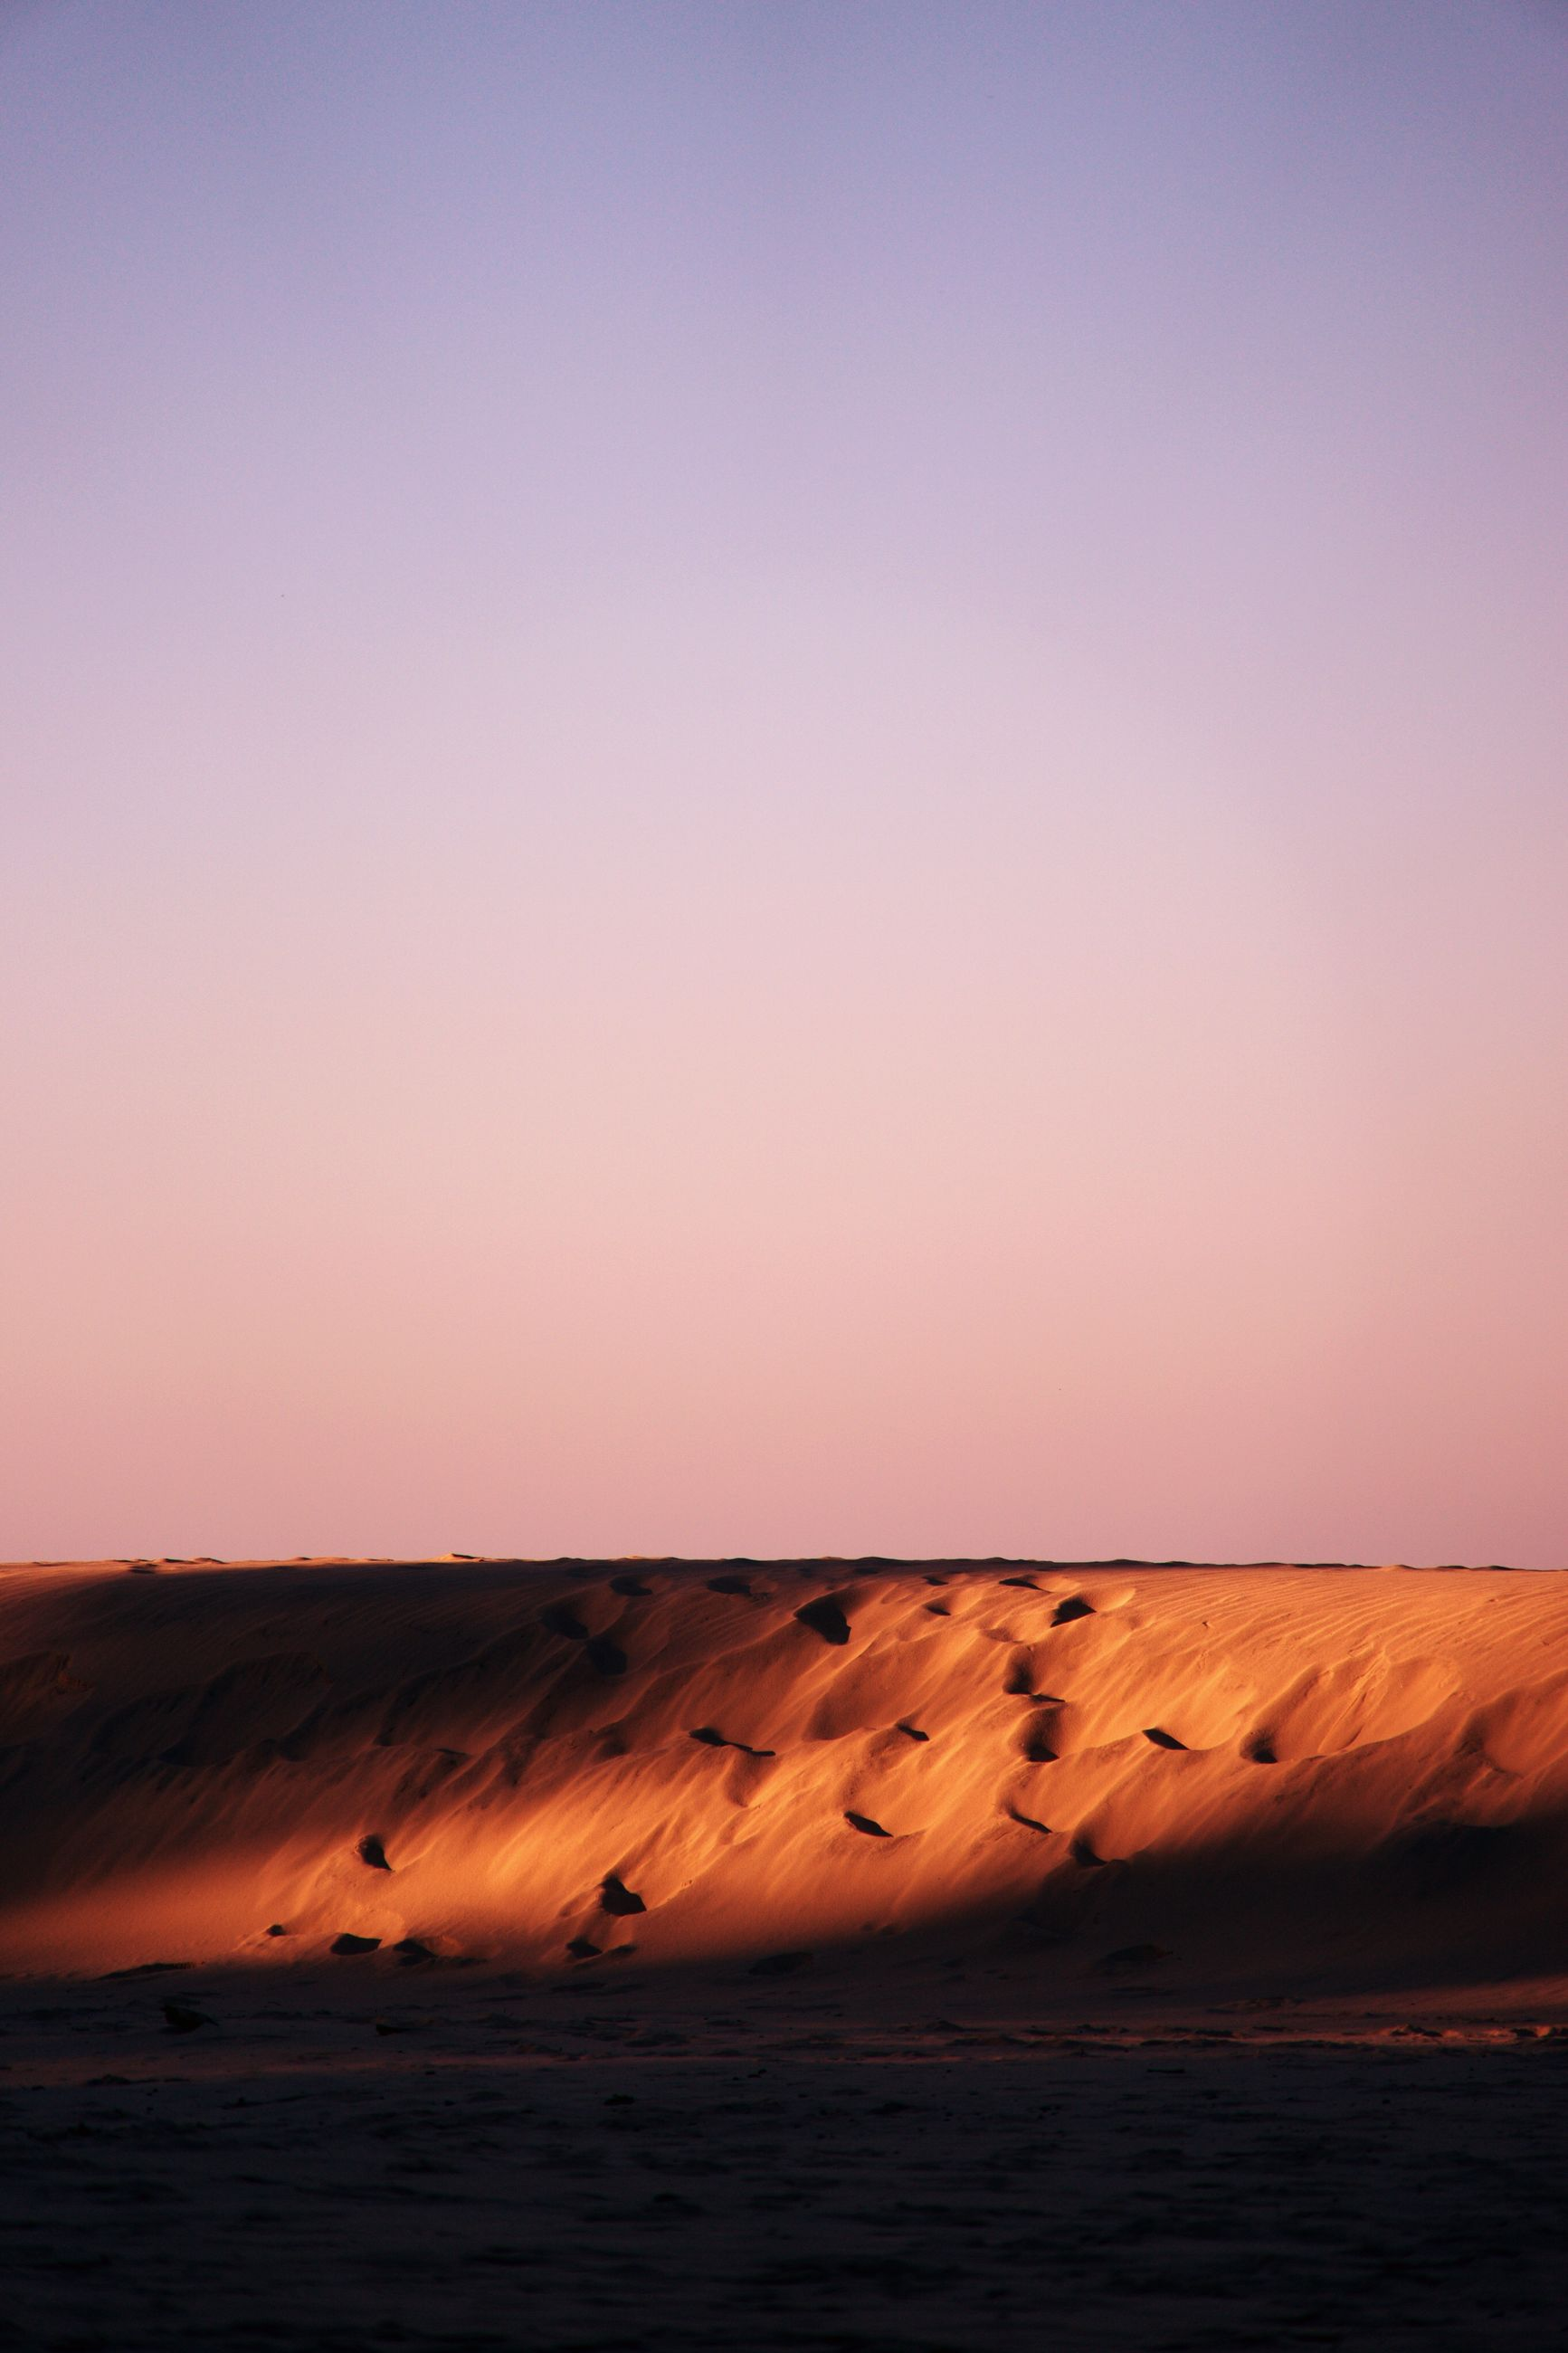 sand, desert, landscape, nature, sunset, tranquil scene, scenics, tranquility, no people, beauty in nature, outdoors, pink color, clear sky, arid climate, horizon over water, sand dune, beach, day